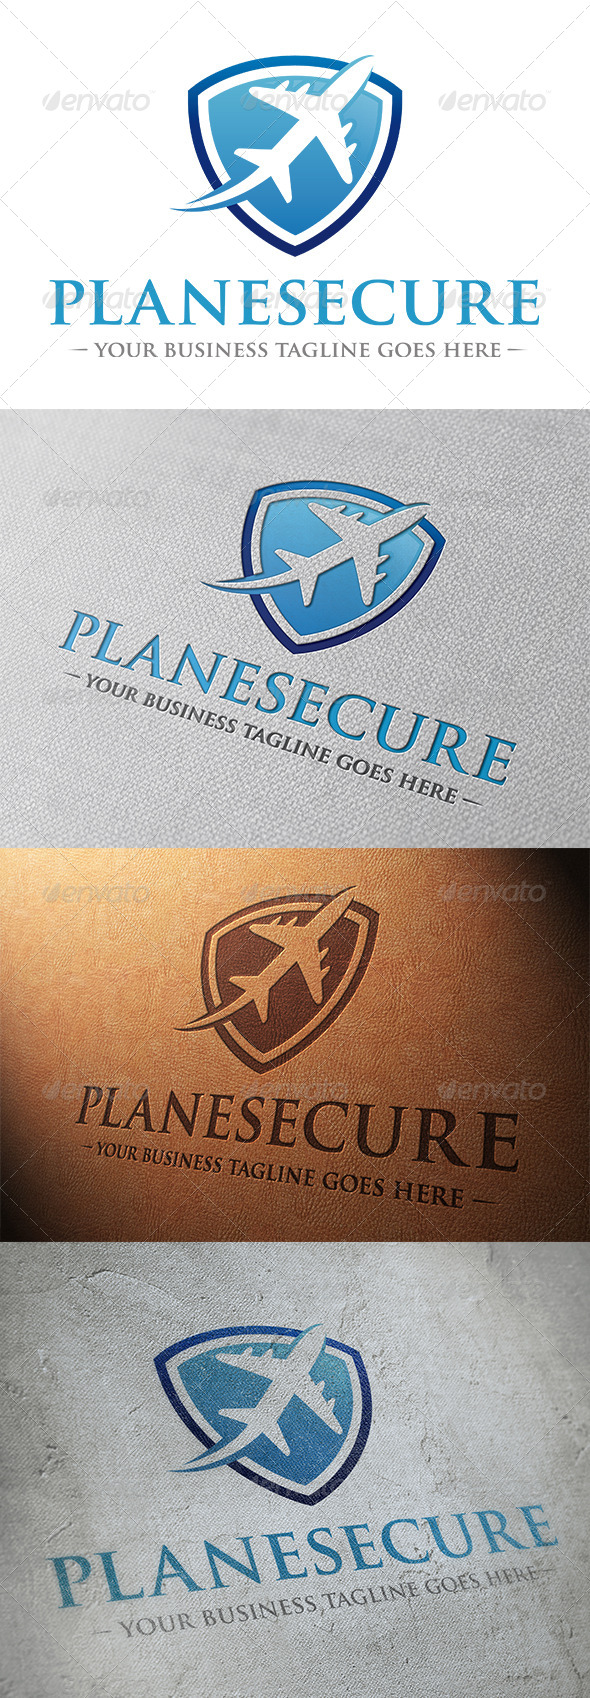 Plane Security Logo Template - Objects Logo Templates